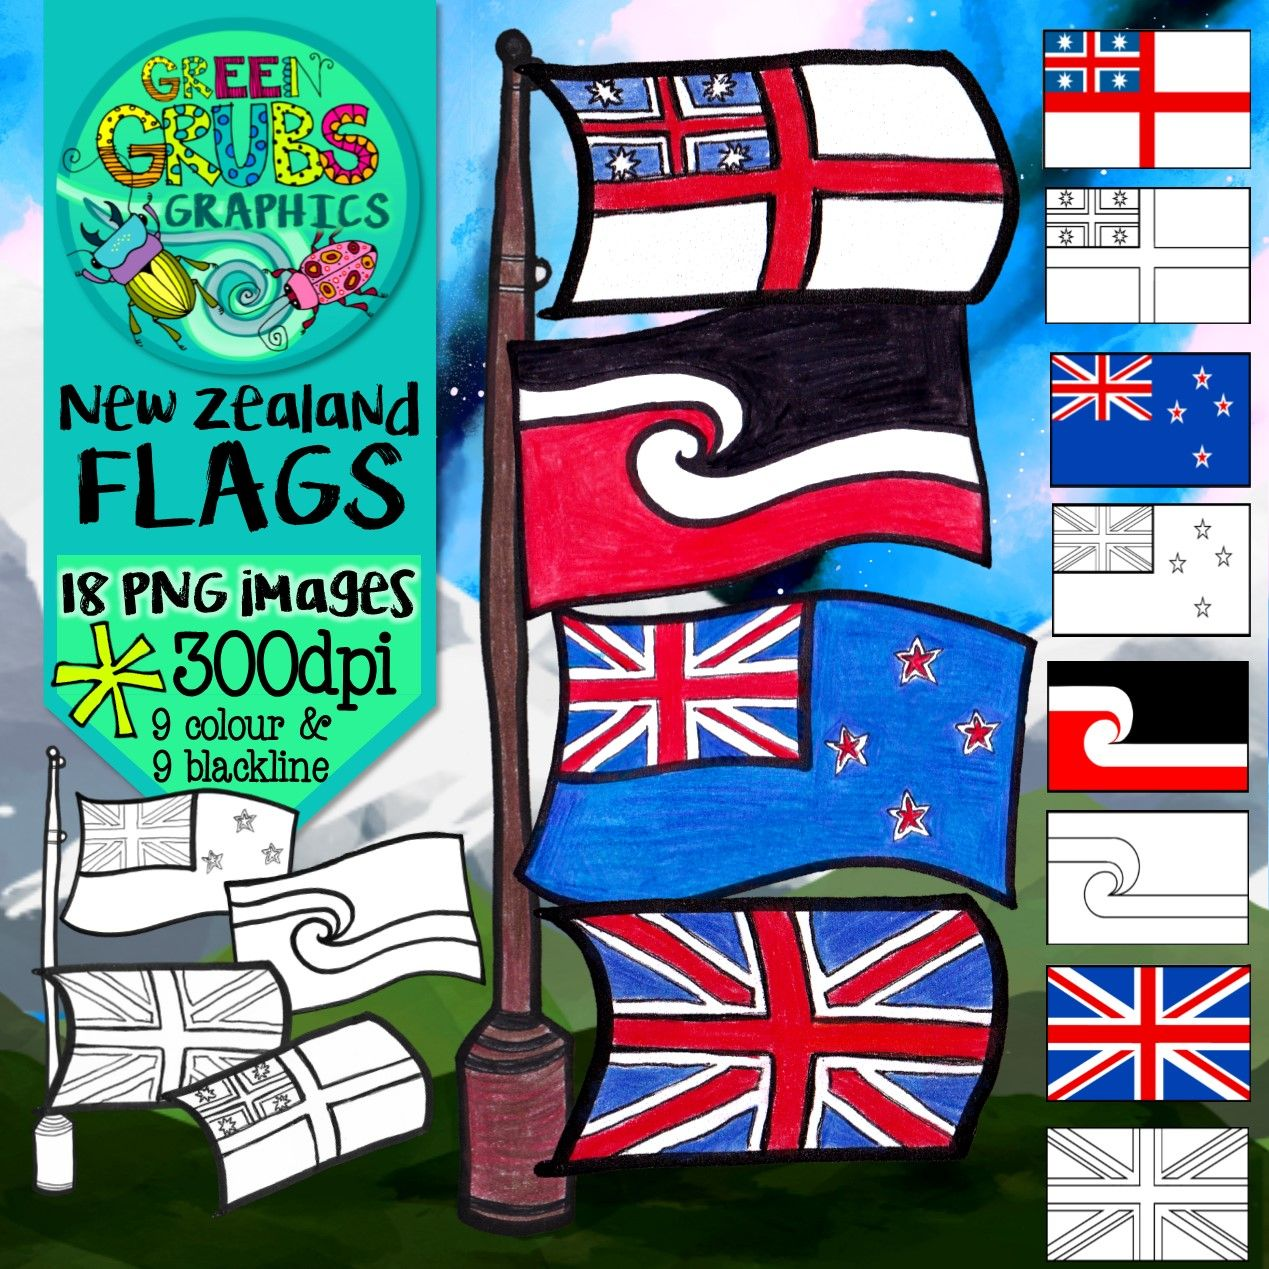 ***FREEBIE!*** Hands up if you're a proud Kiwi? Then this FREE clip art set of New Zealand flags is just what you need!  This resources includes our official flags from 1834 through to the present day (The flag of the united tribes on NZ; The Union Jack, The Blue ensign with stars/current New Zealand flag & the Tino Rangatiratanga flag)